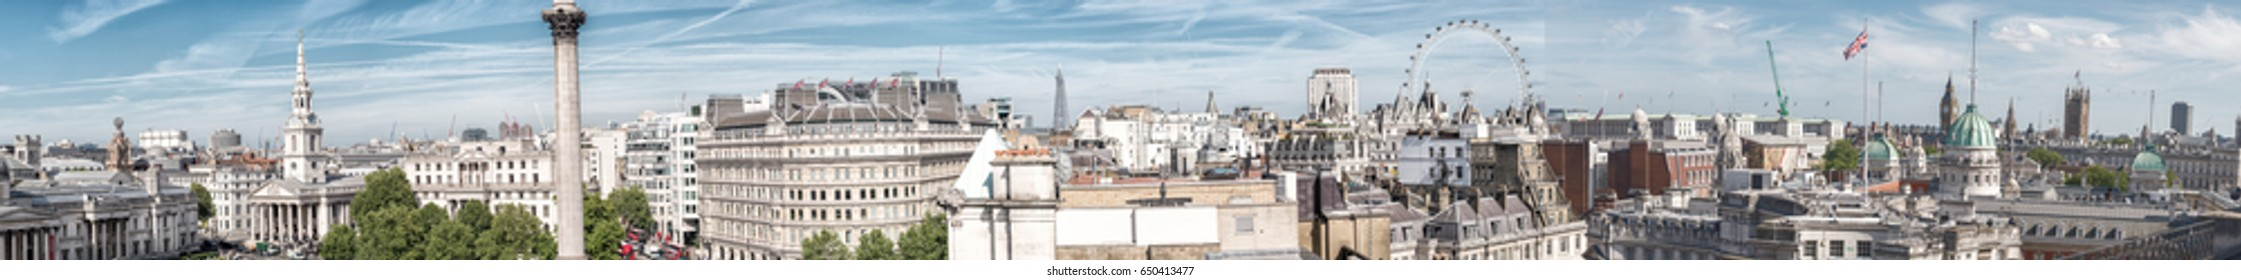 LONDON - JUNE 12, 2015: Panoramic view of the city from Trafalgar Square rooftop. London attracts 50 million tourists annually.